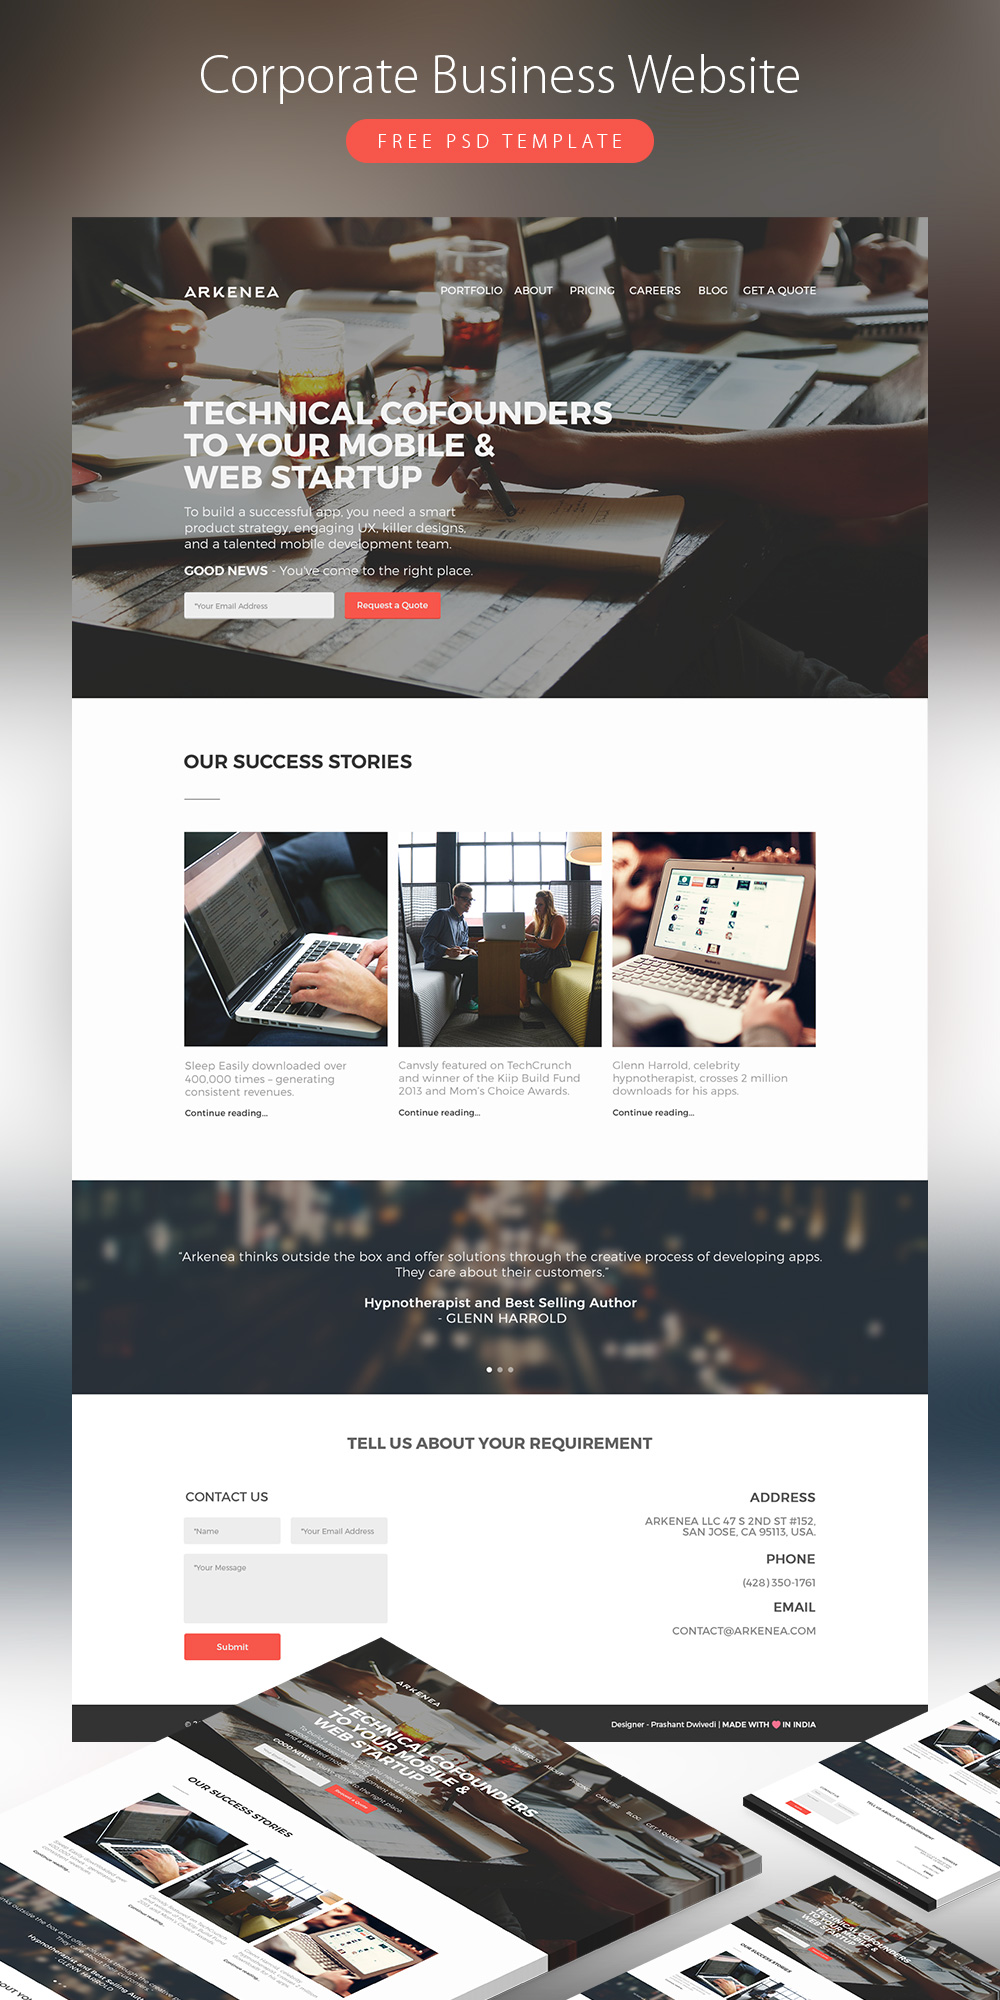 Corporate business website template free psd download psd corporate business website template free psd wajeb Gallery